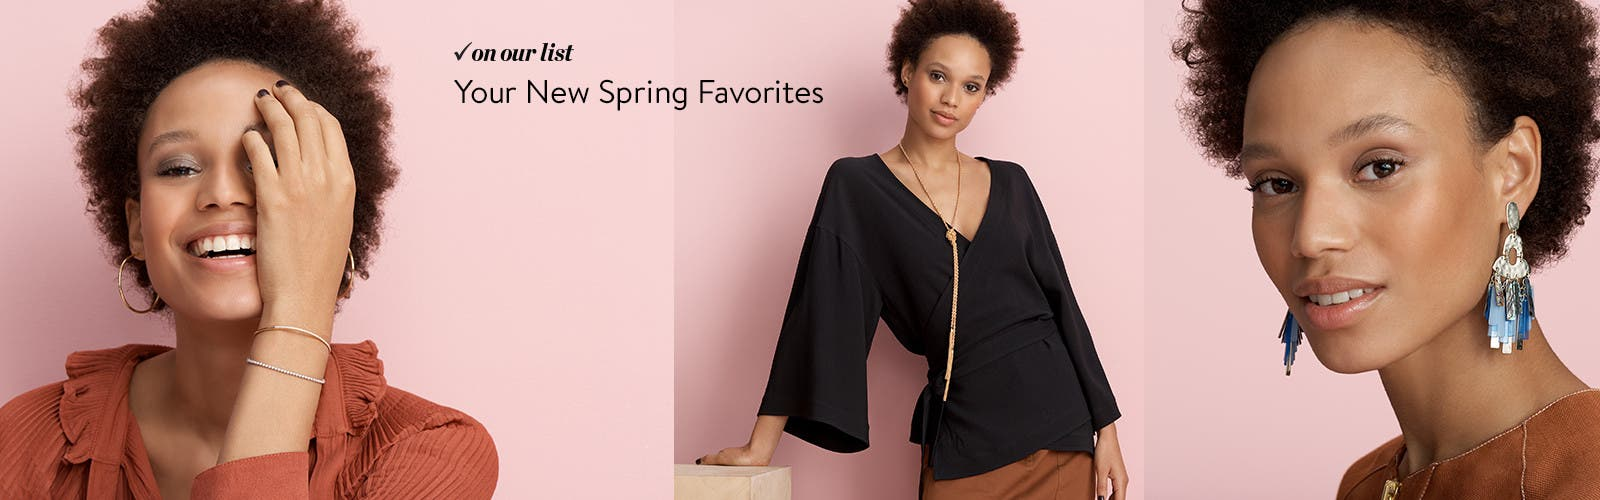 Your new spring favorites.